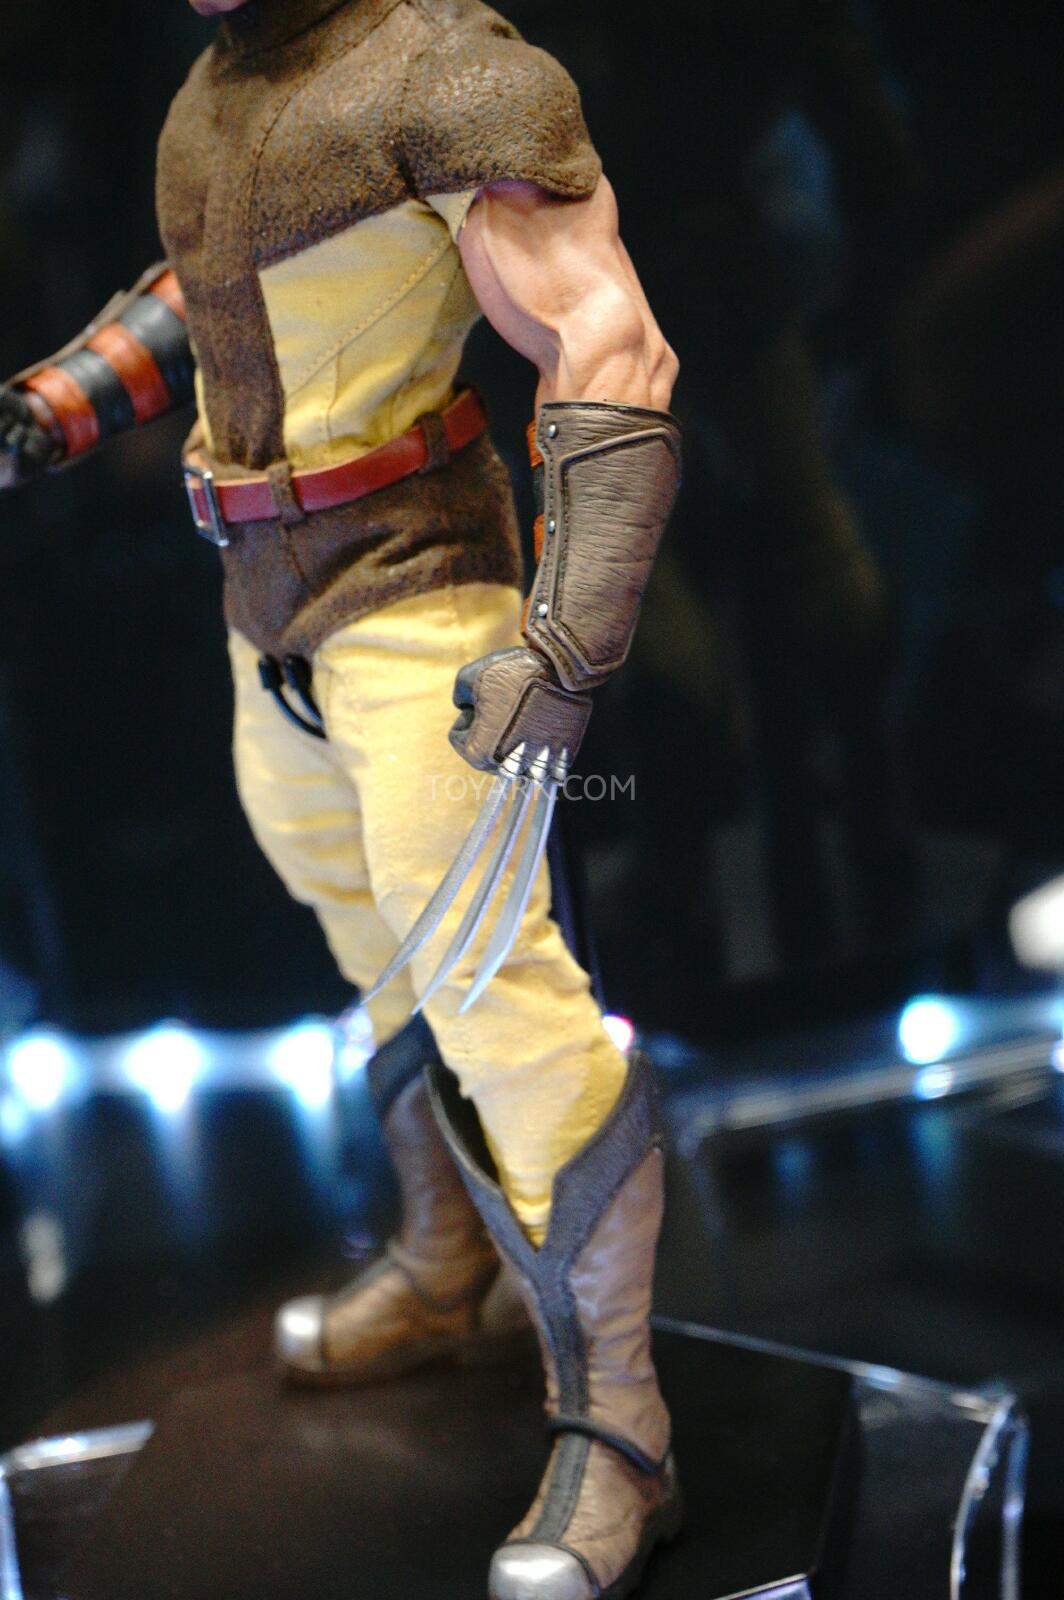 [Sideshow] Marvel Sixth Scale Collection - Wolverine DSC07552